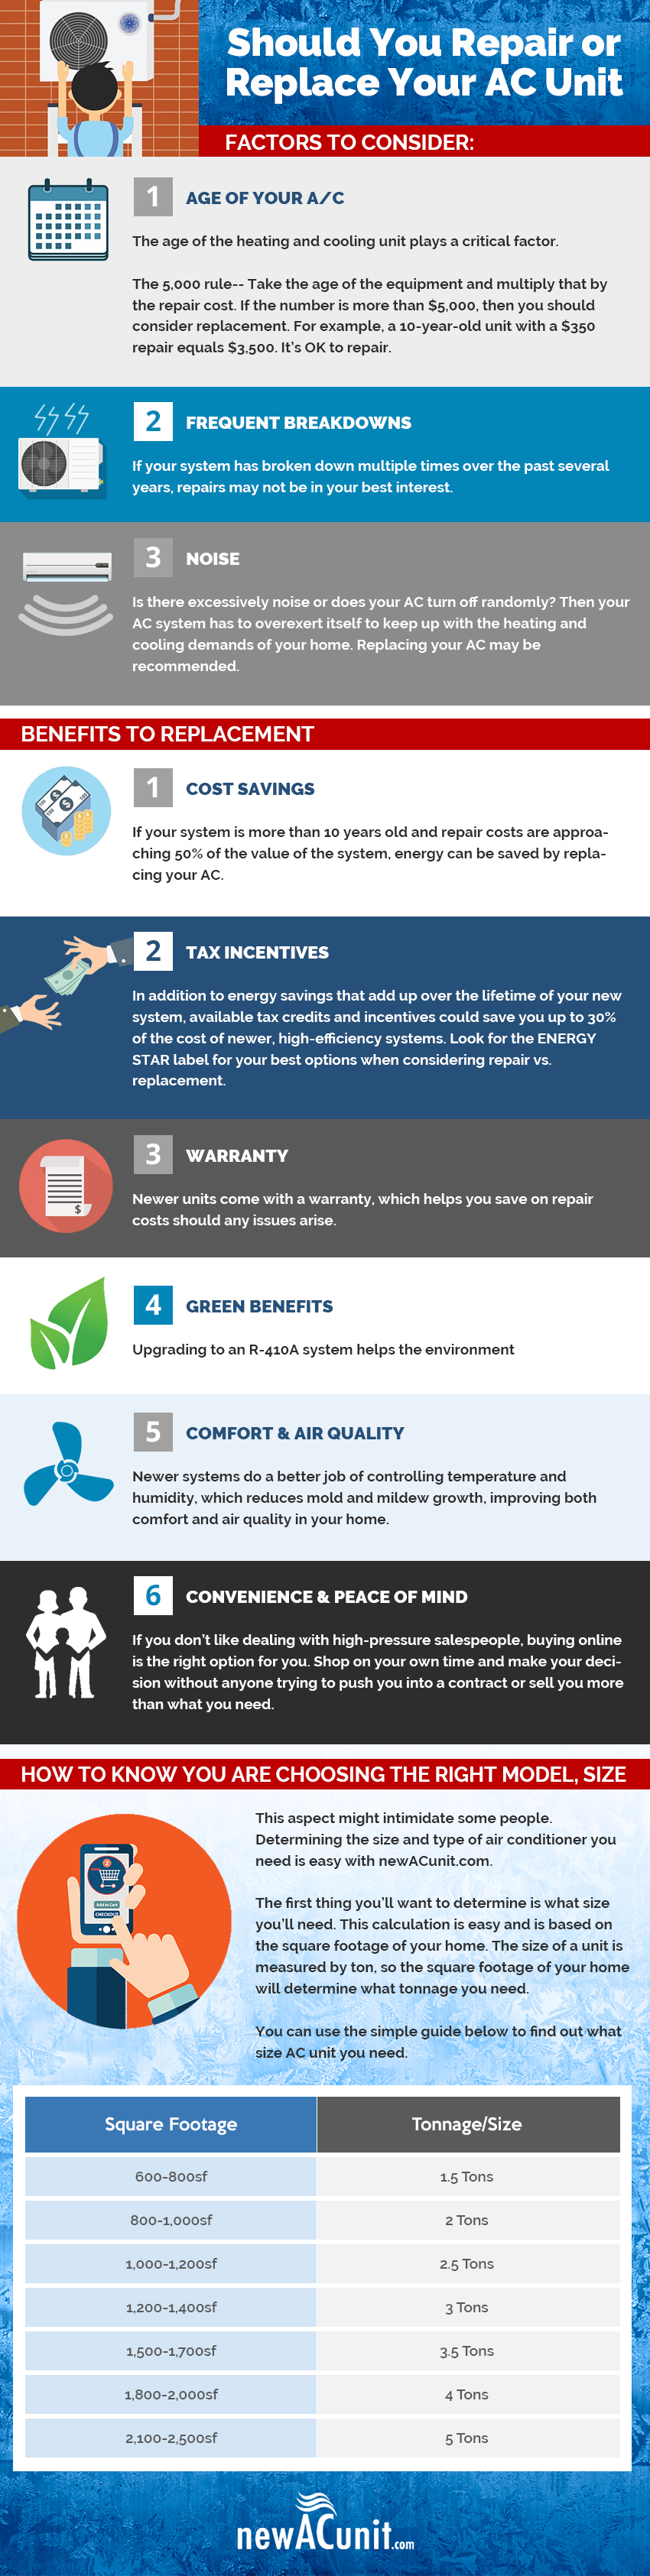 Repair or replace your AC unit - infographic